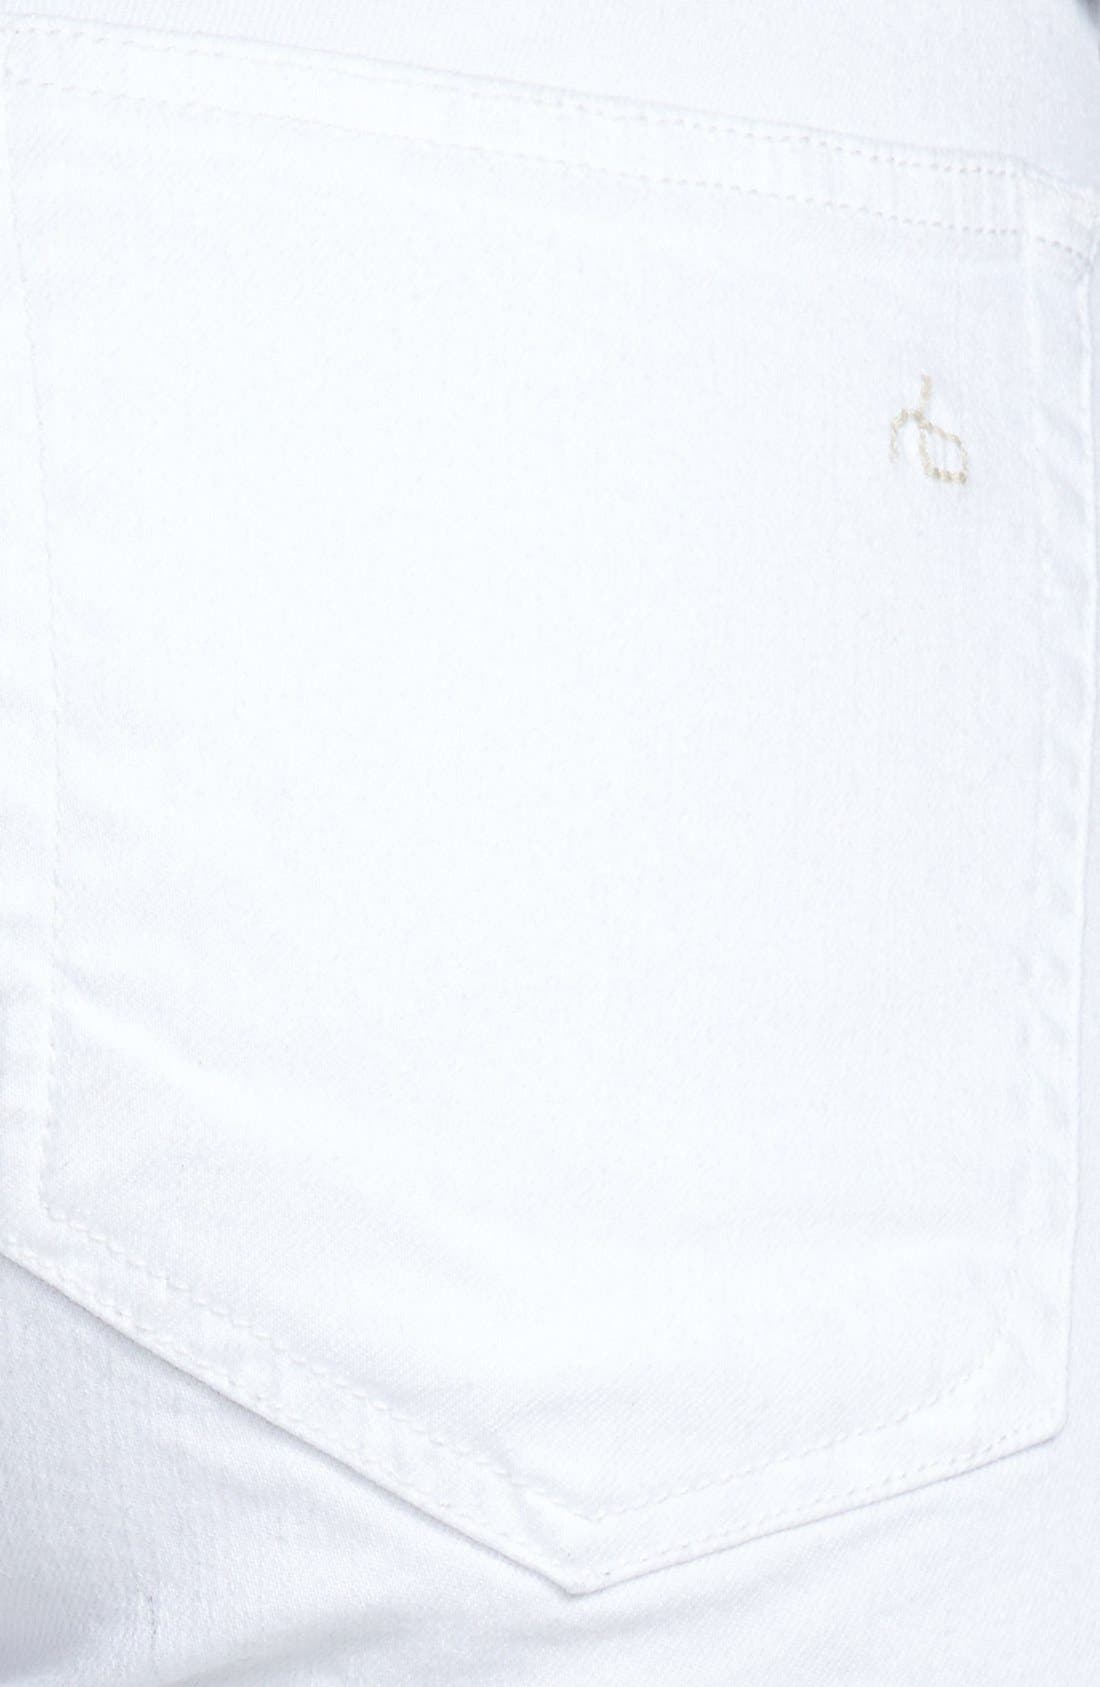 Alternate Image 3  - rag & bone/JEAN 'The Dre' Skinny Jeans (Aged Bright White)